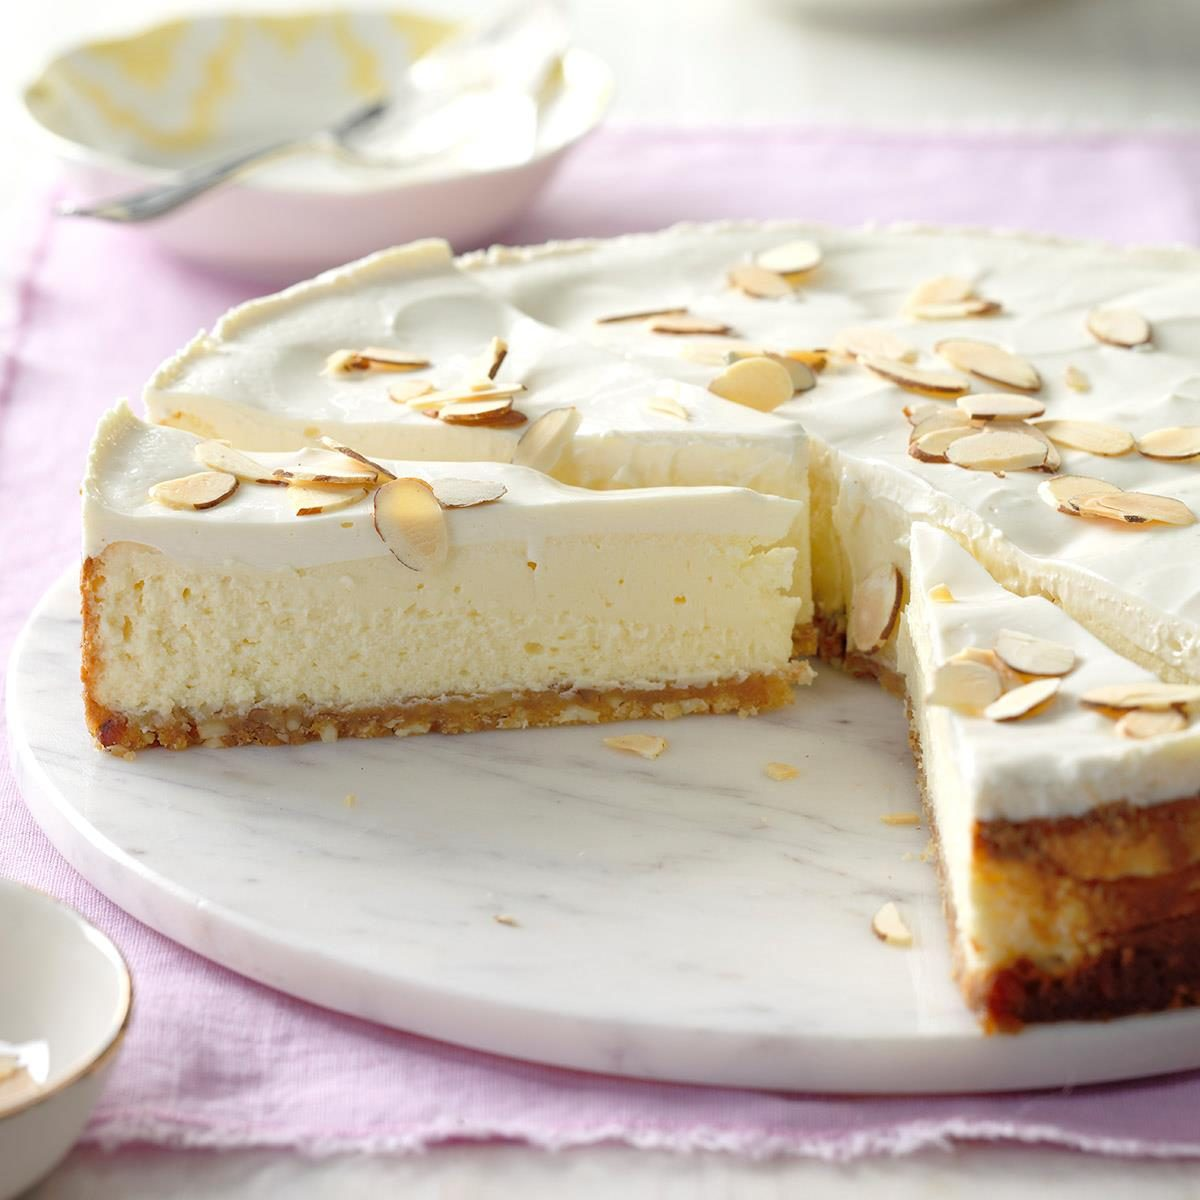 This Almond Cheesecake Is Our Most Popular Dessert Ever